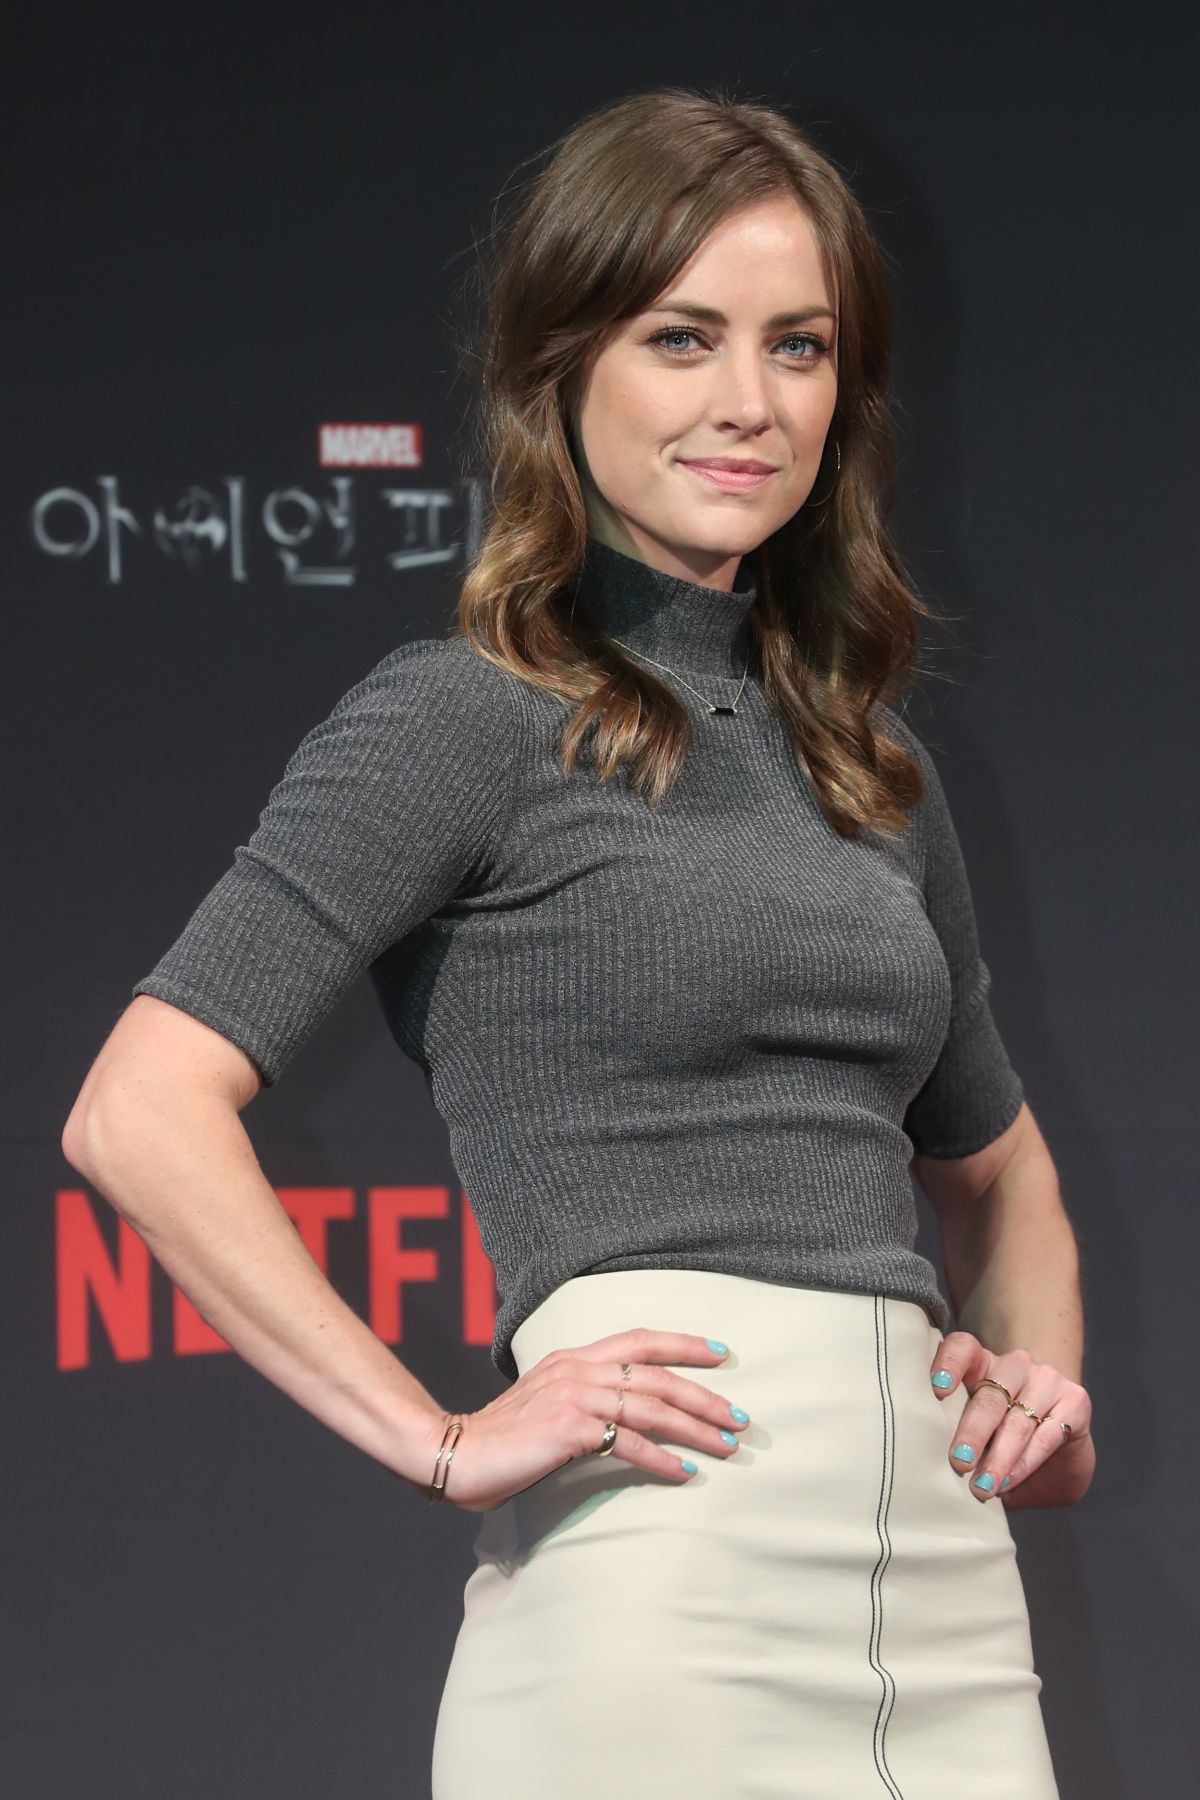 JESSICA STROUP at Iron Fist Press Conference in Seoul 03/29/2017